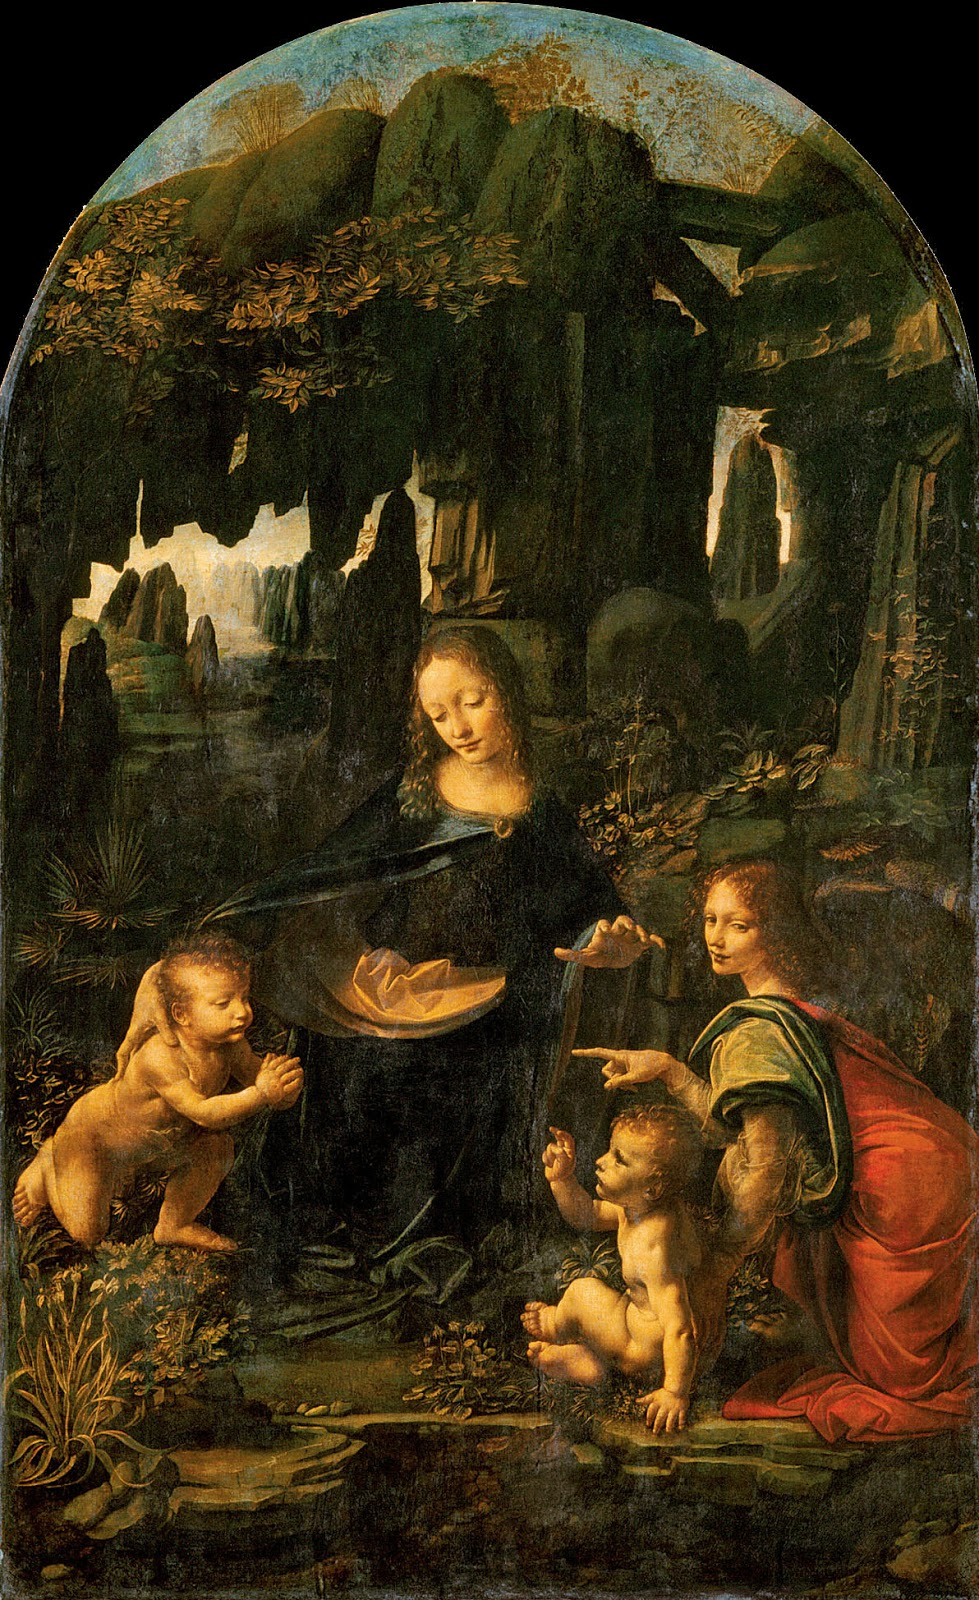 Virgin of the rocks by da vinci